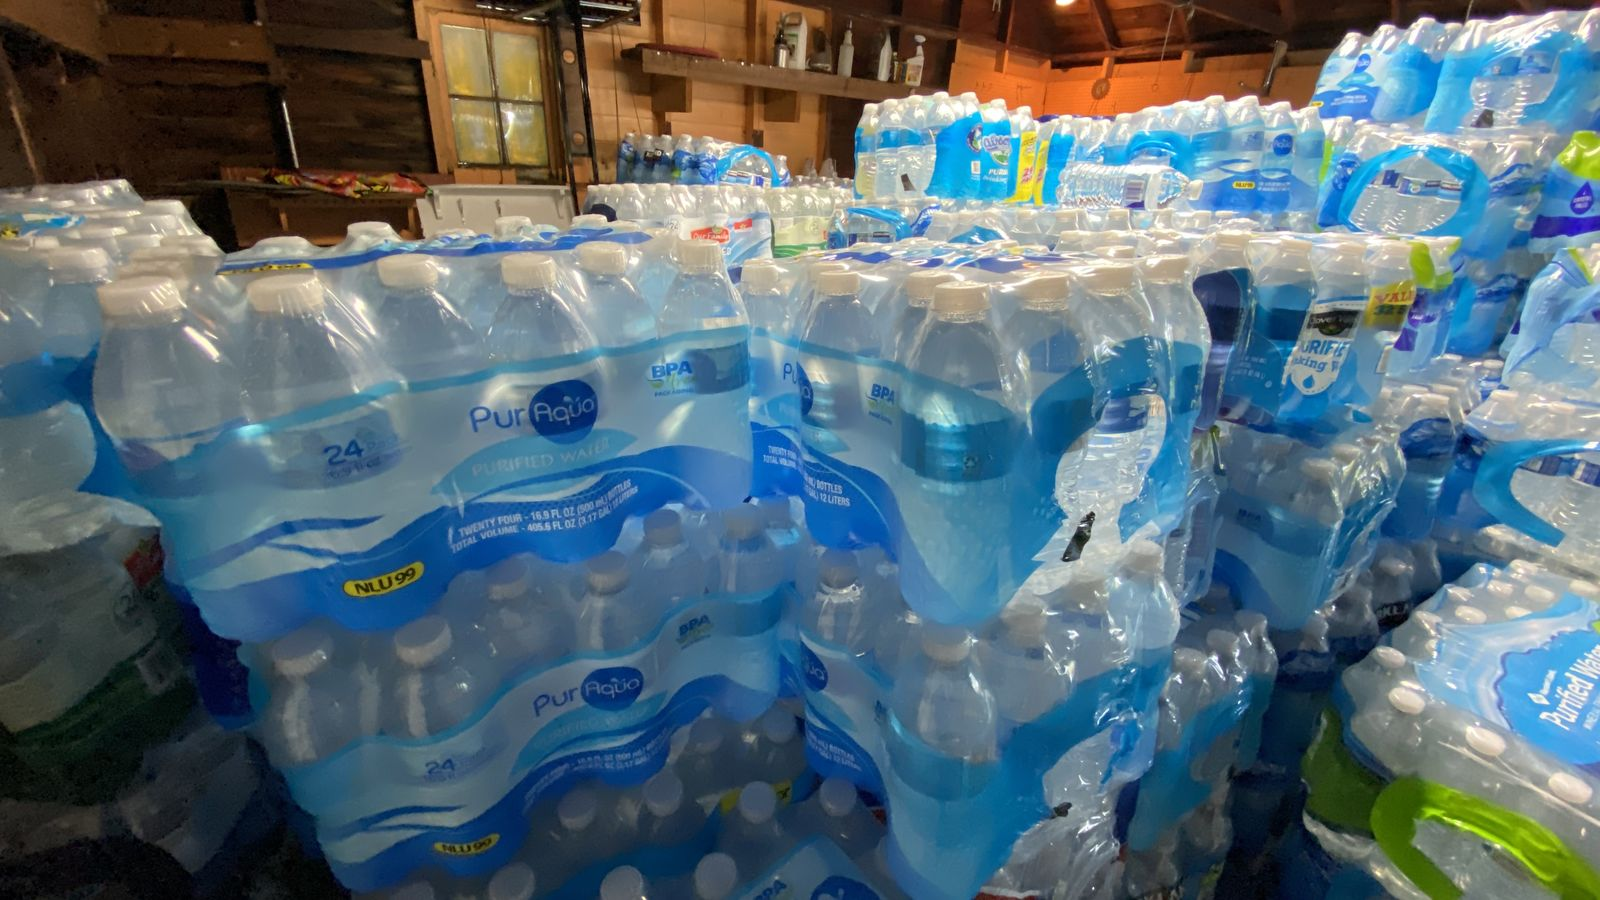 Tamara Custard started filling her garage with cases July 16, 2020. She has been receiving water from community members as well as area businesses.{ }(WWM/Jason Heeres)